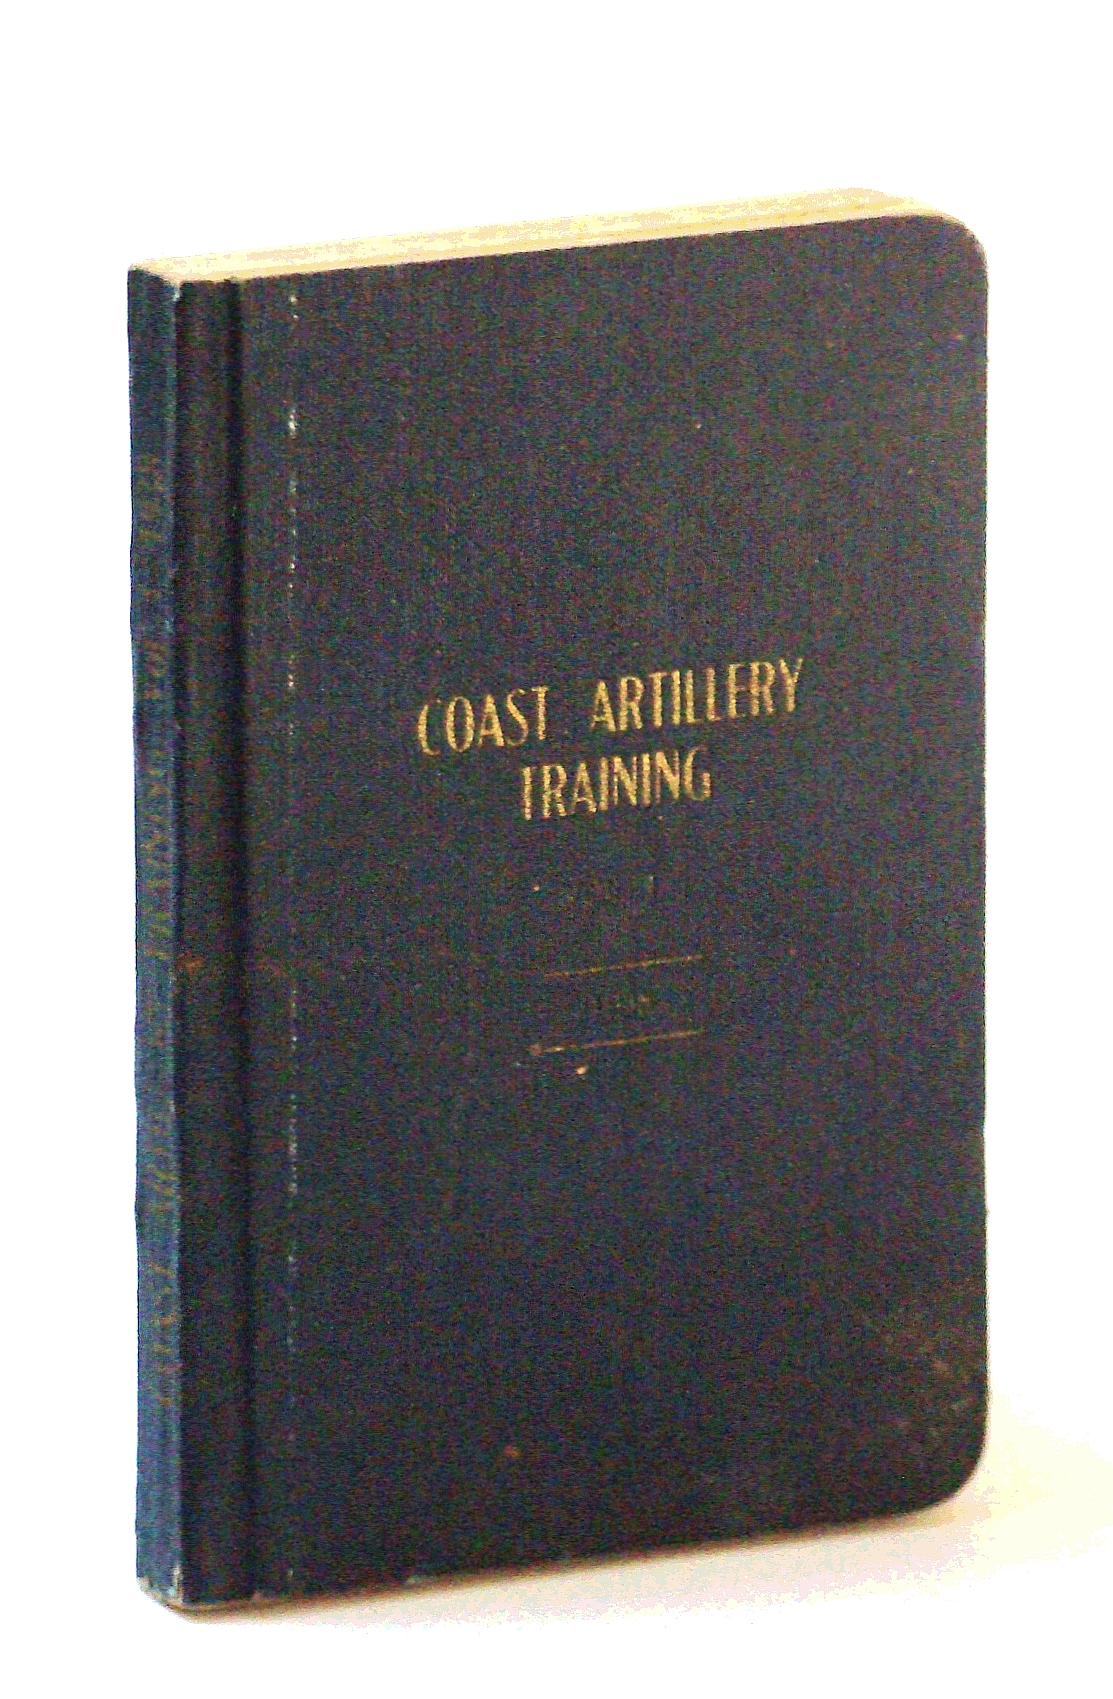 Image for Coast Artillery Training Vol. [Volume] I [1 / One]